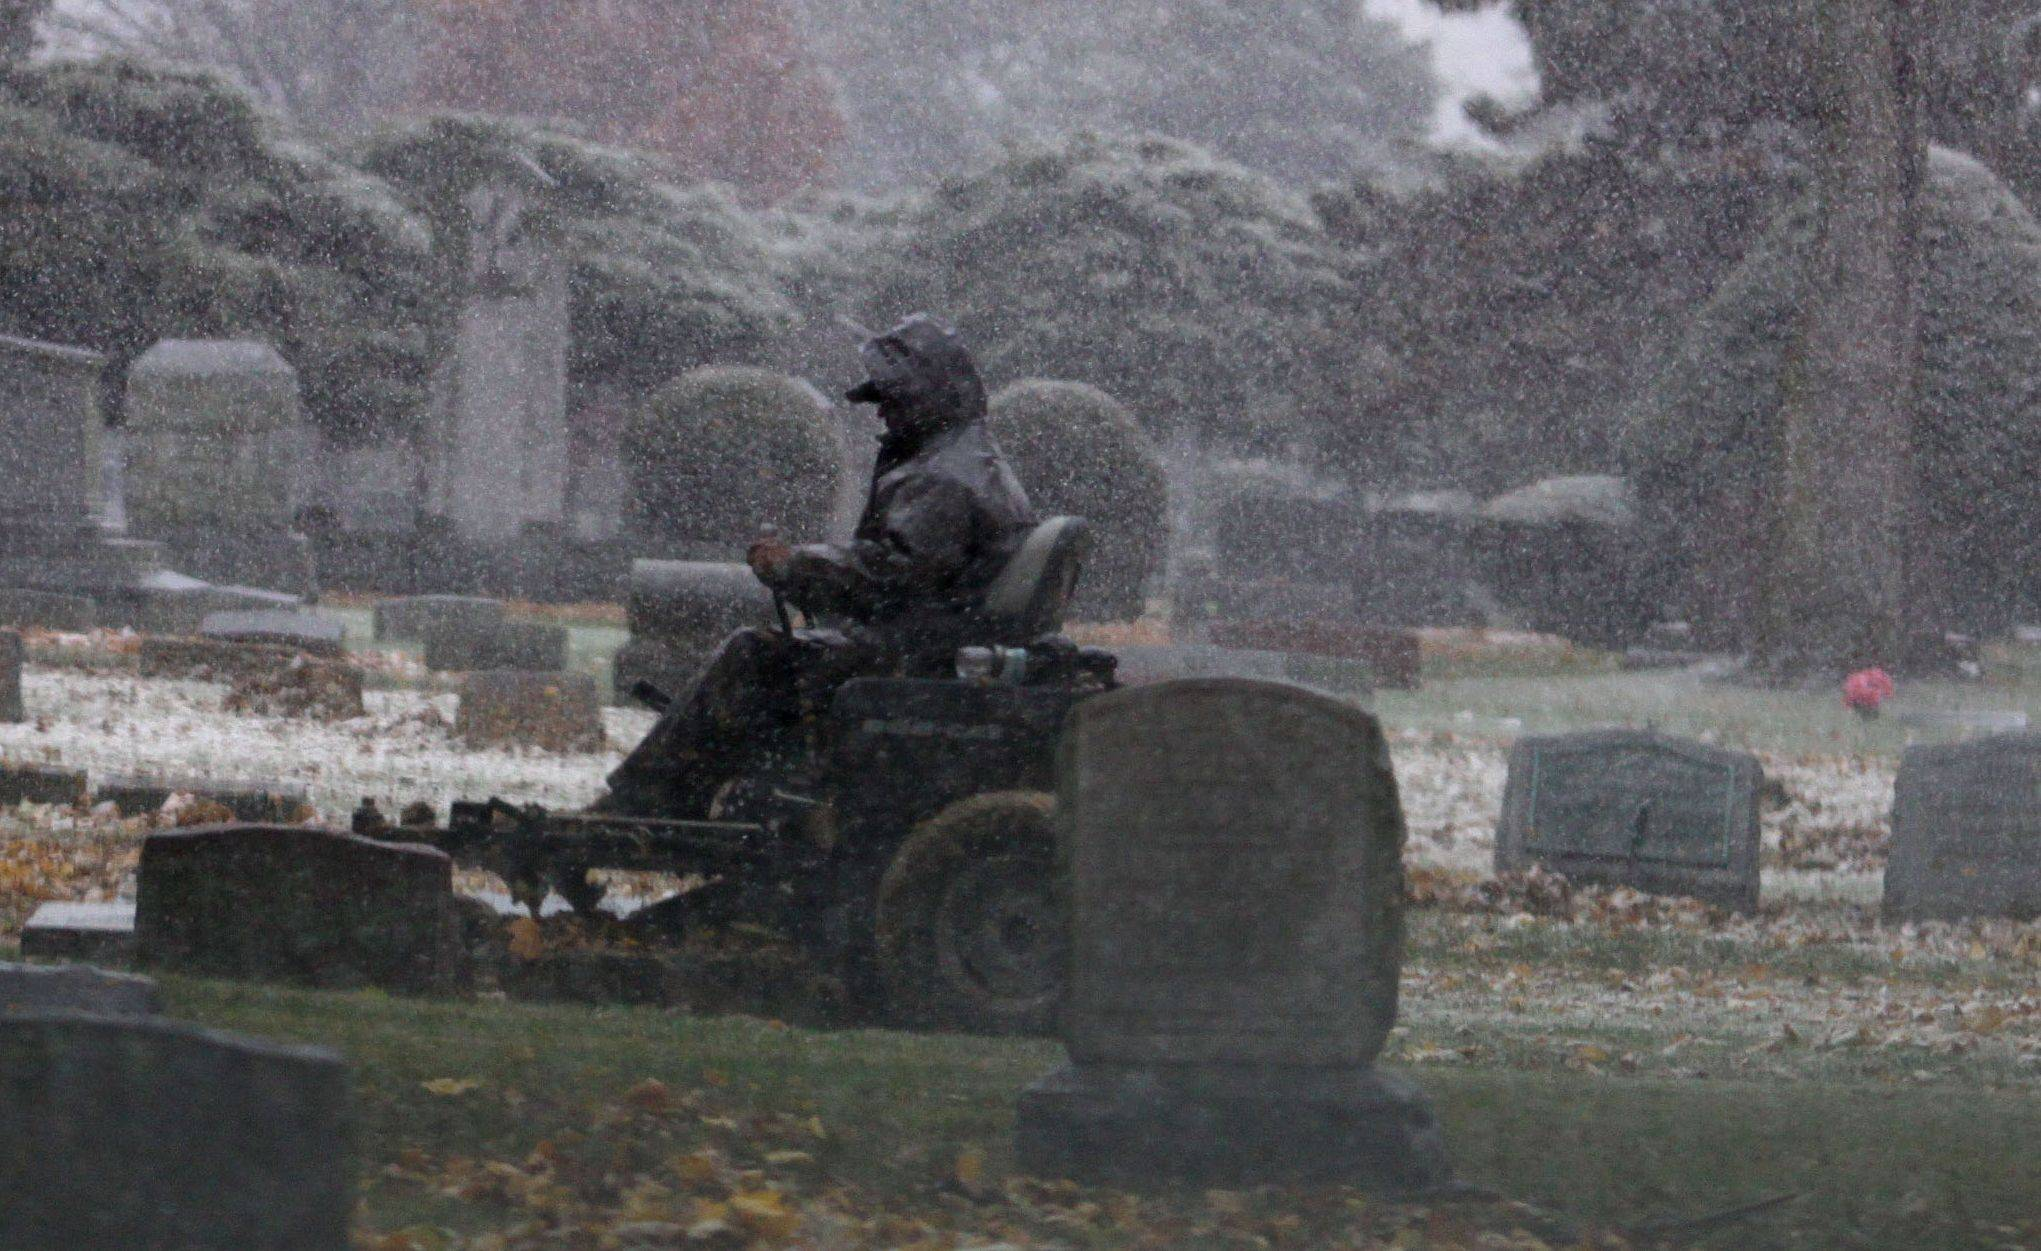 Rain turns into light snow Monday afternoon as maintenance crews work on the grounds of Wheaton Cemetery.